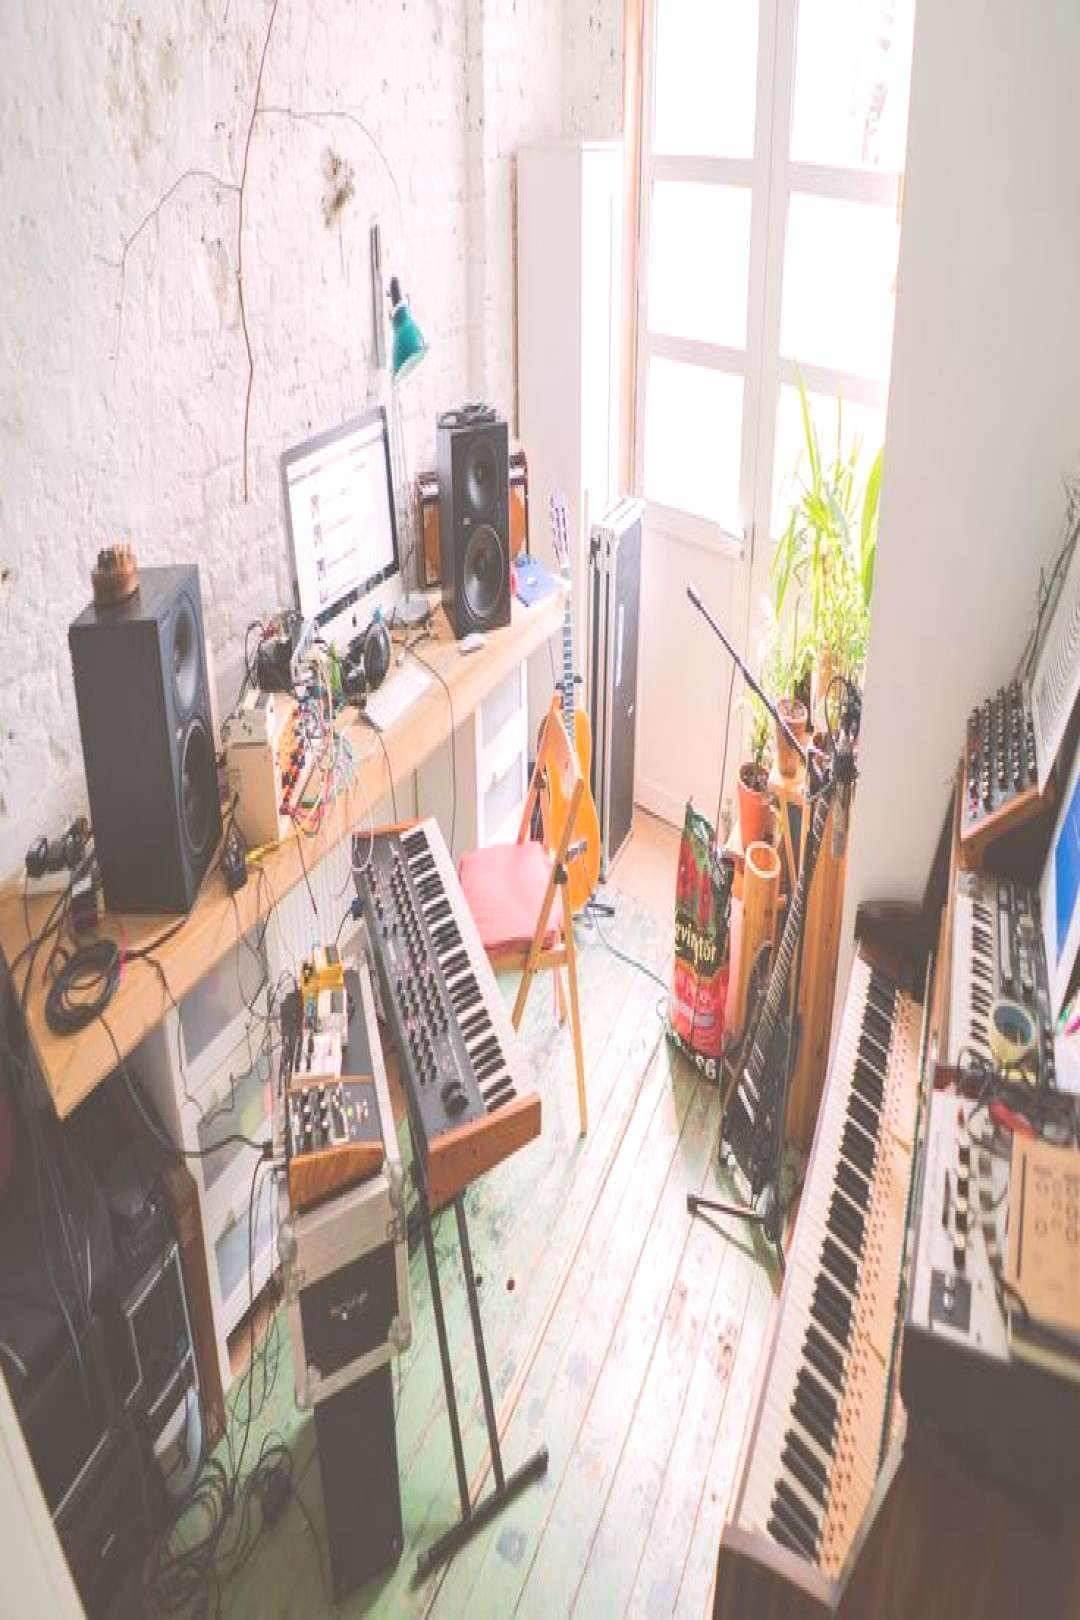 Rival Consoles guides us through the gear he uses to make his intricate electron... -  Rival Consol